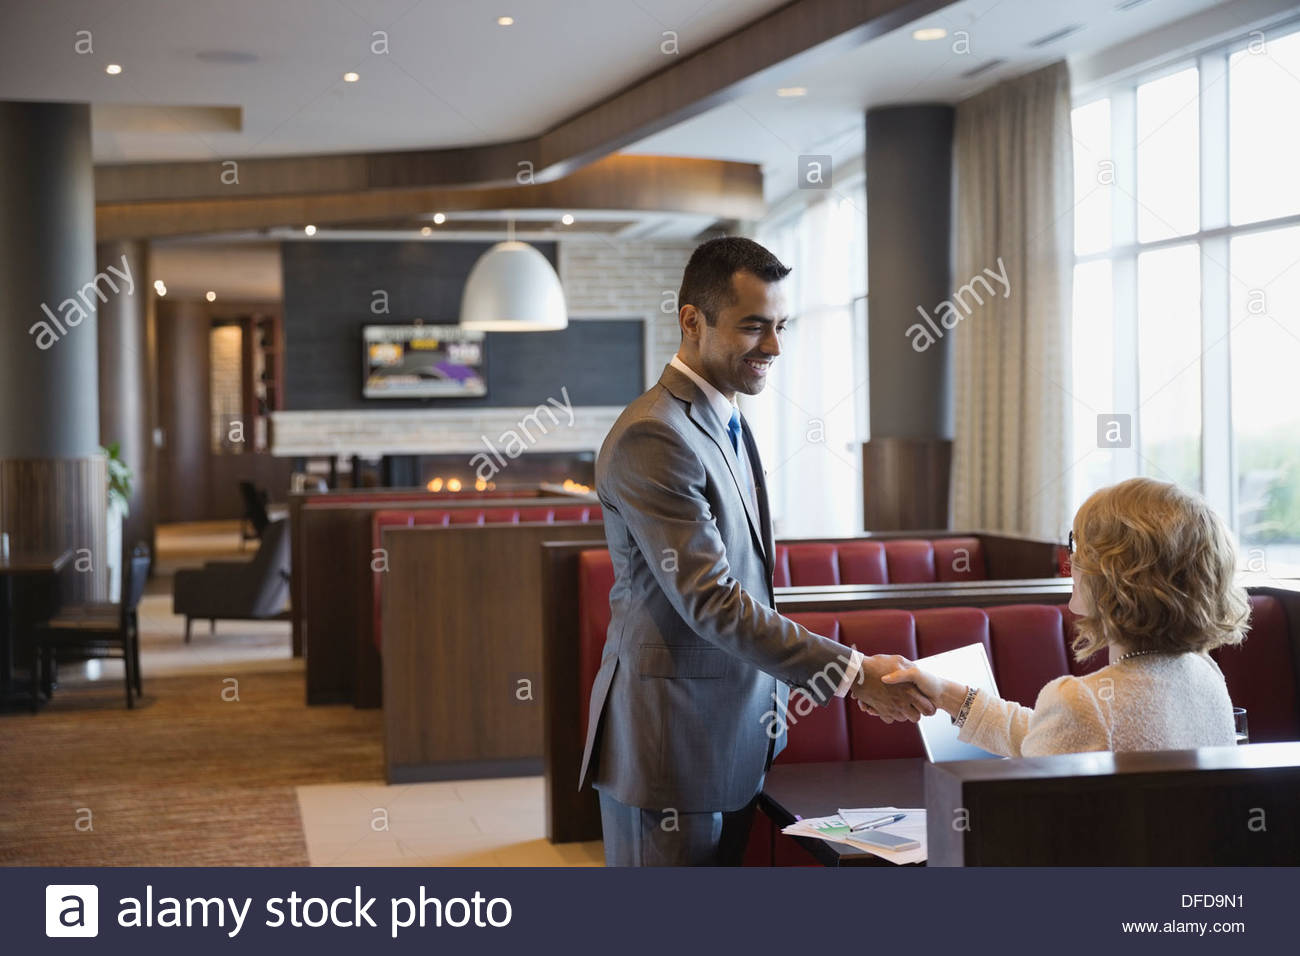 Businessman shaking hands with female colleague in hotel restaurant - Stock Image